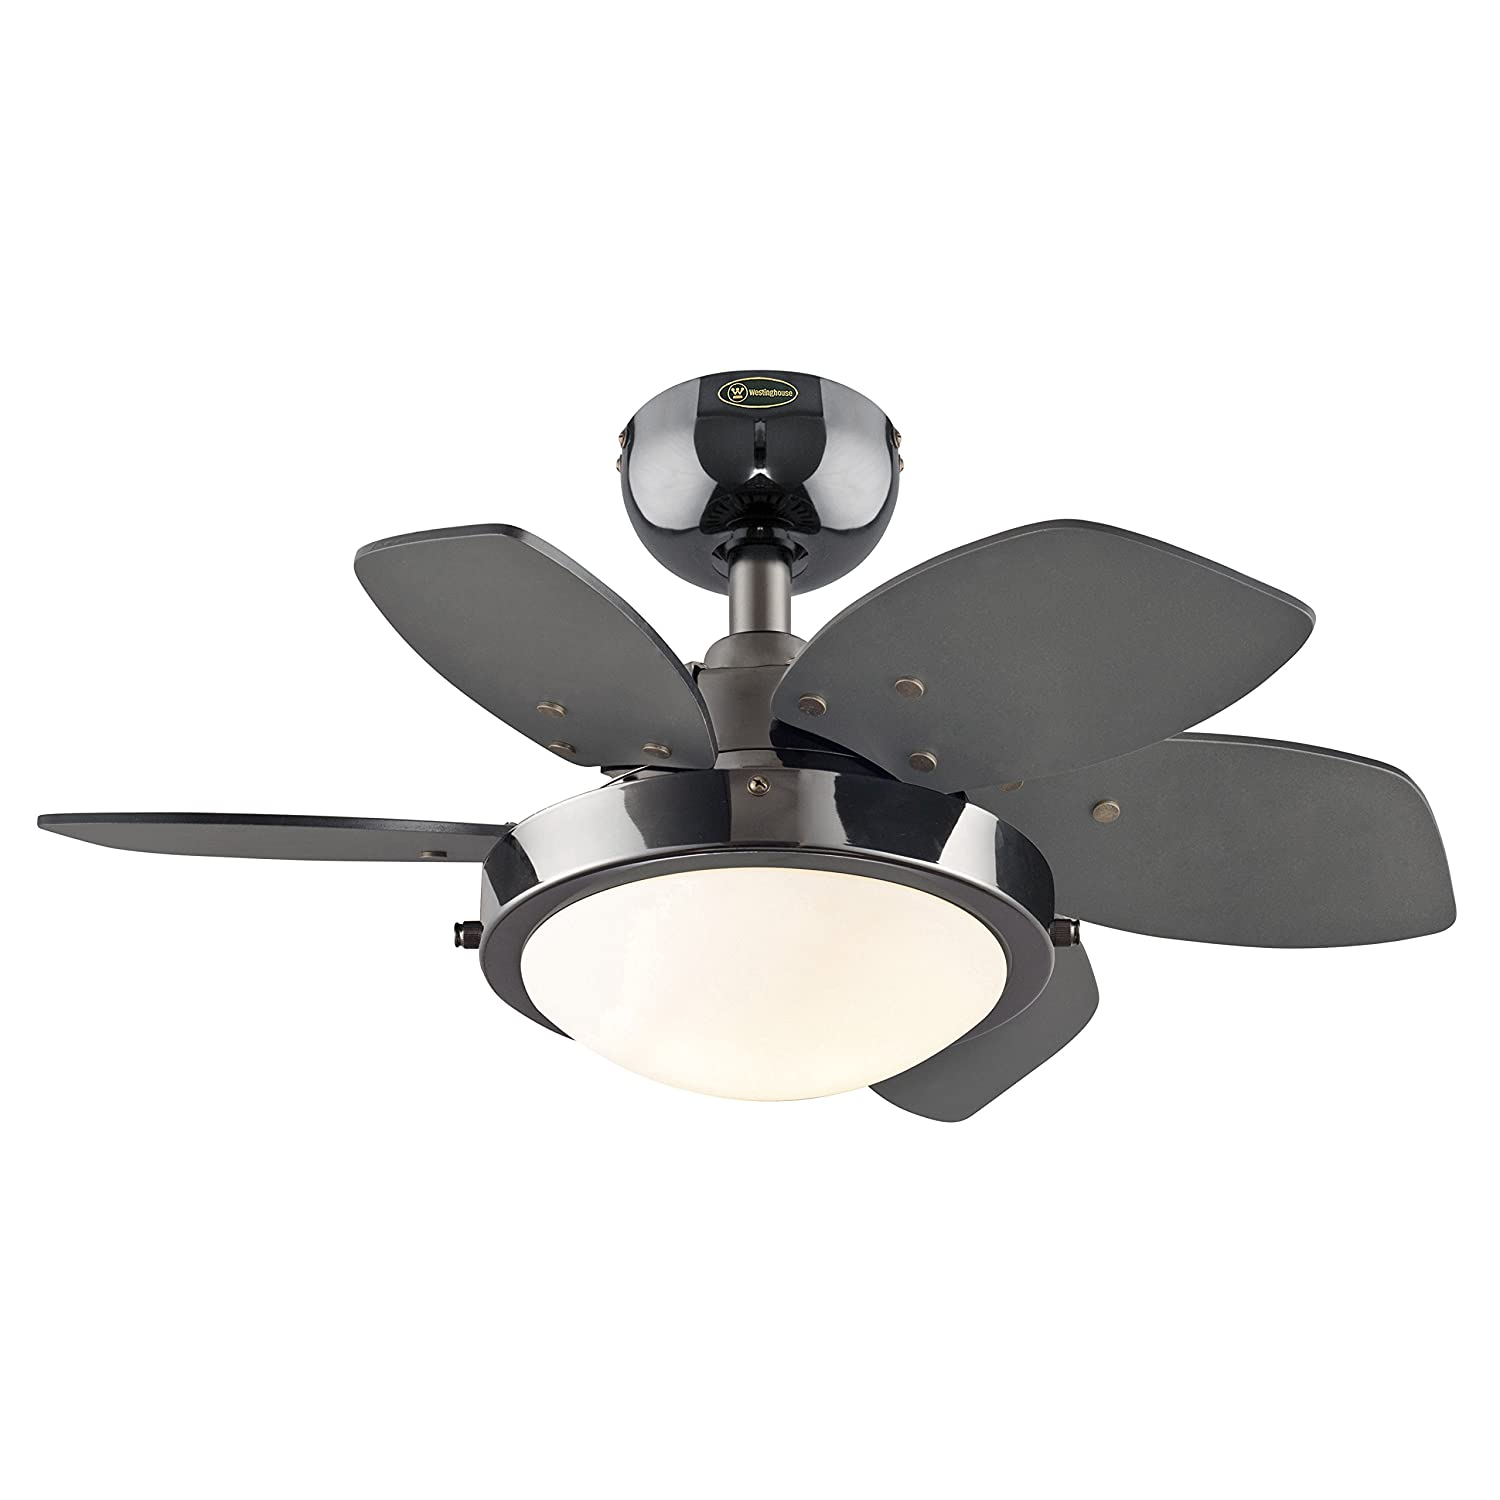 Quince 24 Inch Gun Metal Indoor Ceiling Fan Light Kit